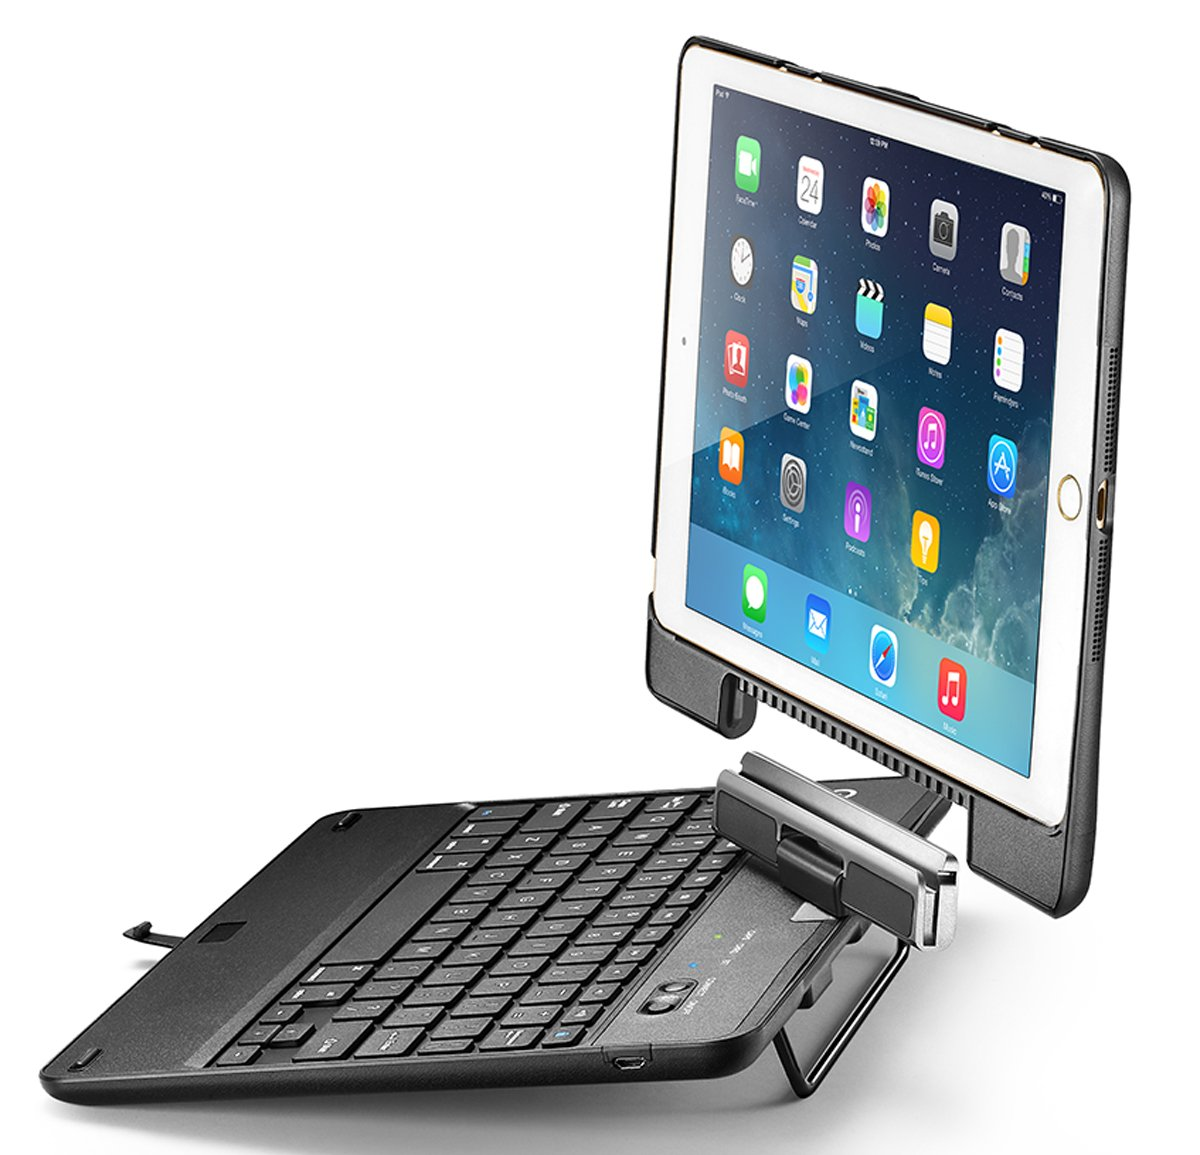 c4336817985 New Trent NT55B Airbender Star iPad Air Keyboard Case with Detachable  Rotatable Wireless Bluetooth Smart Keyboard for Apple iPad Air / iPad Air 2